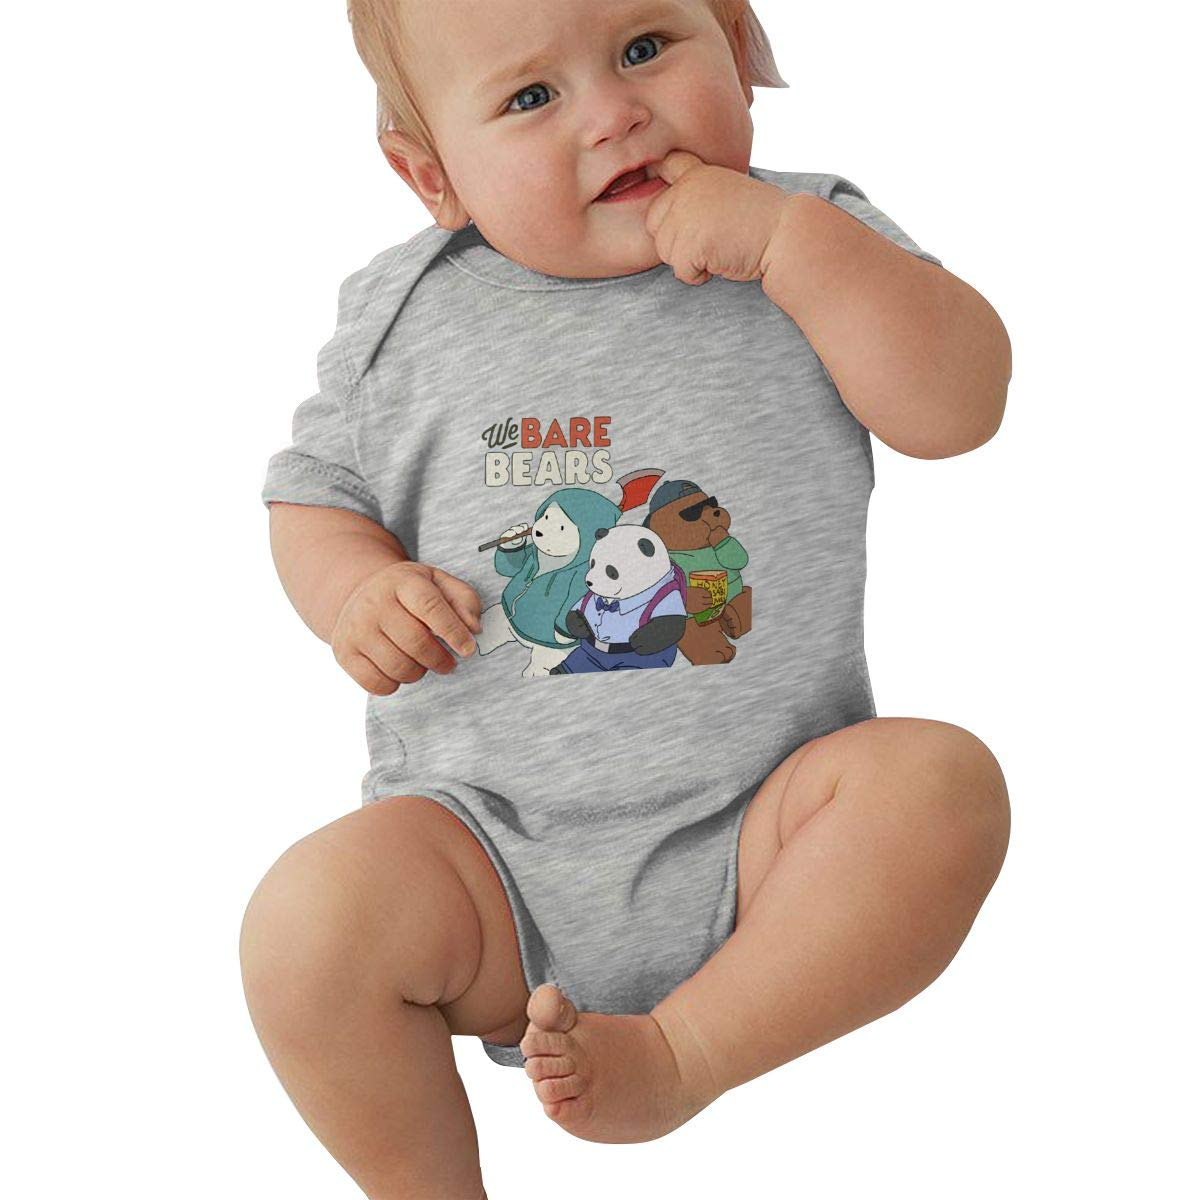 LuYiDa Unisex Baby Crew Neck Short Sleeve Romper We Bare Bears Funny Crawling Clothes Black